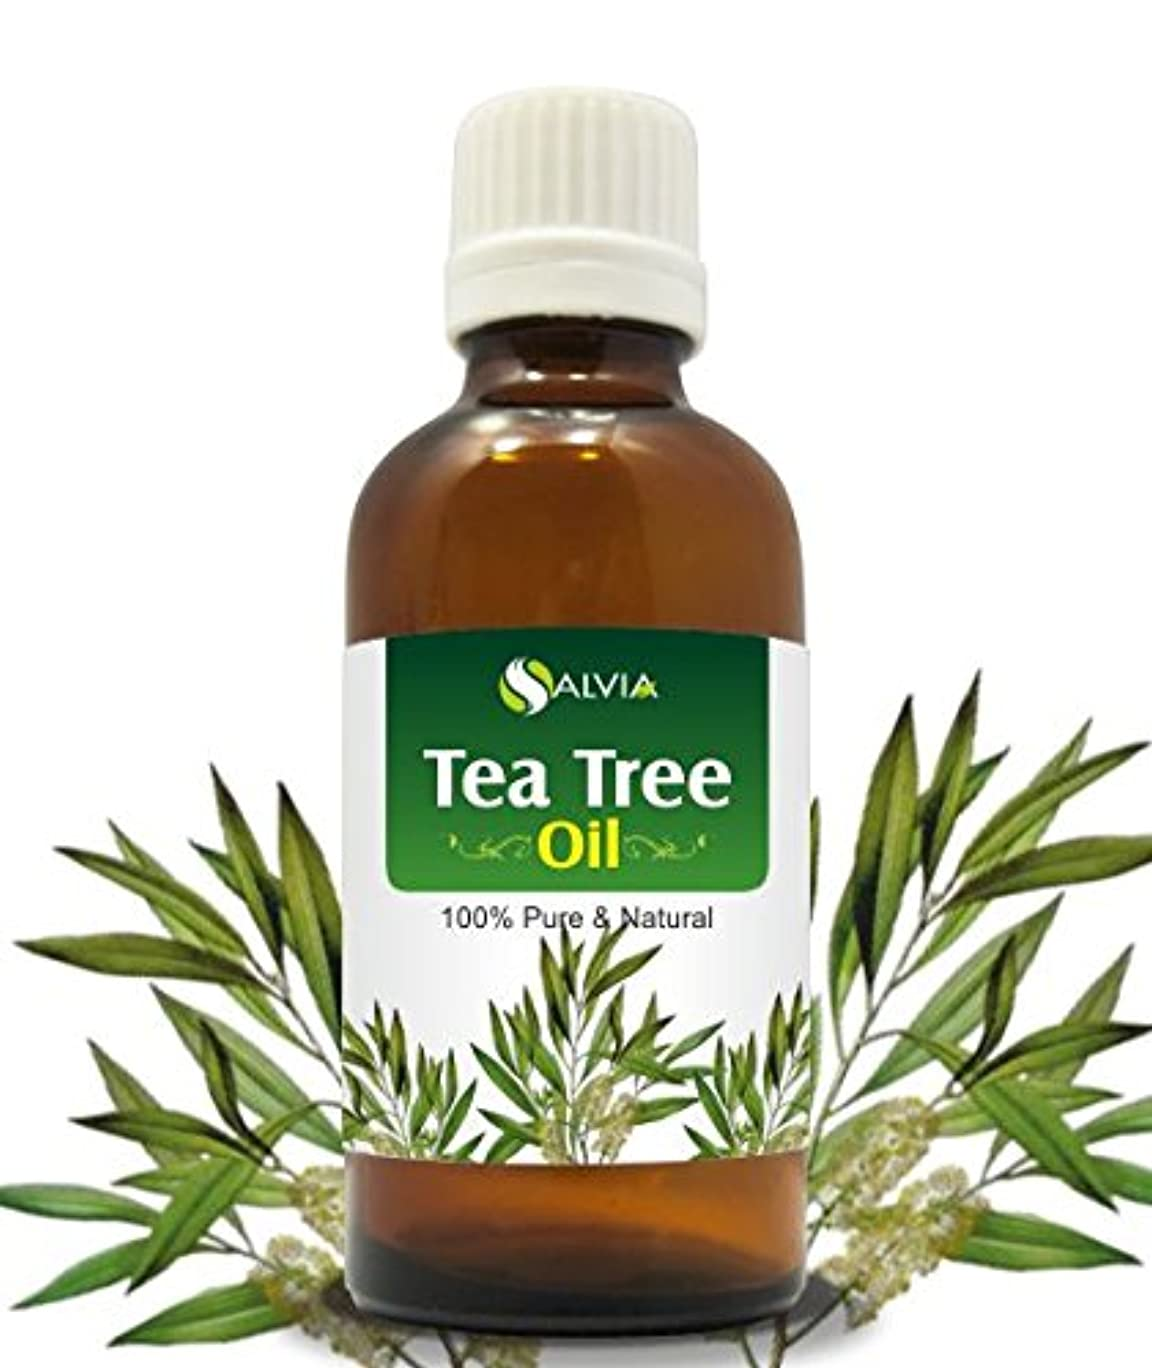 道路を作るプロセス瞑想的そこTEA TREE OIL 100% NATURAL PURE UNDILUTED UNCUT ESSENTIAL OIL 30ML